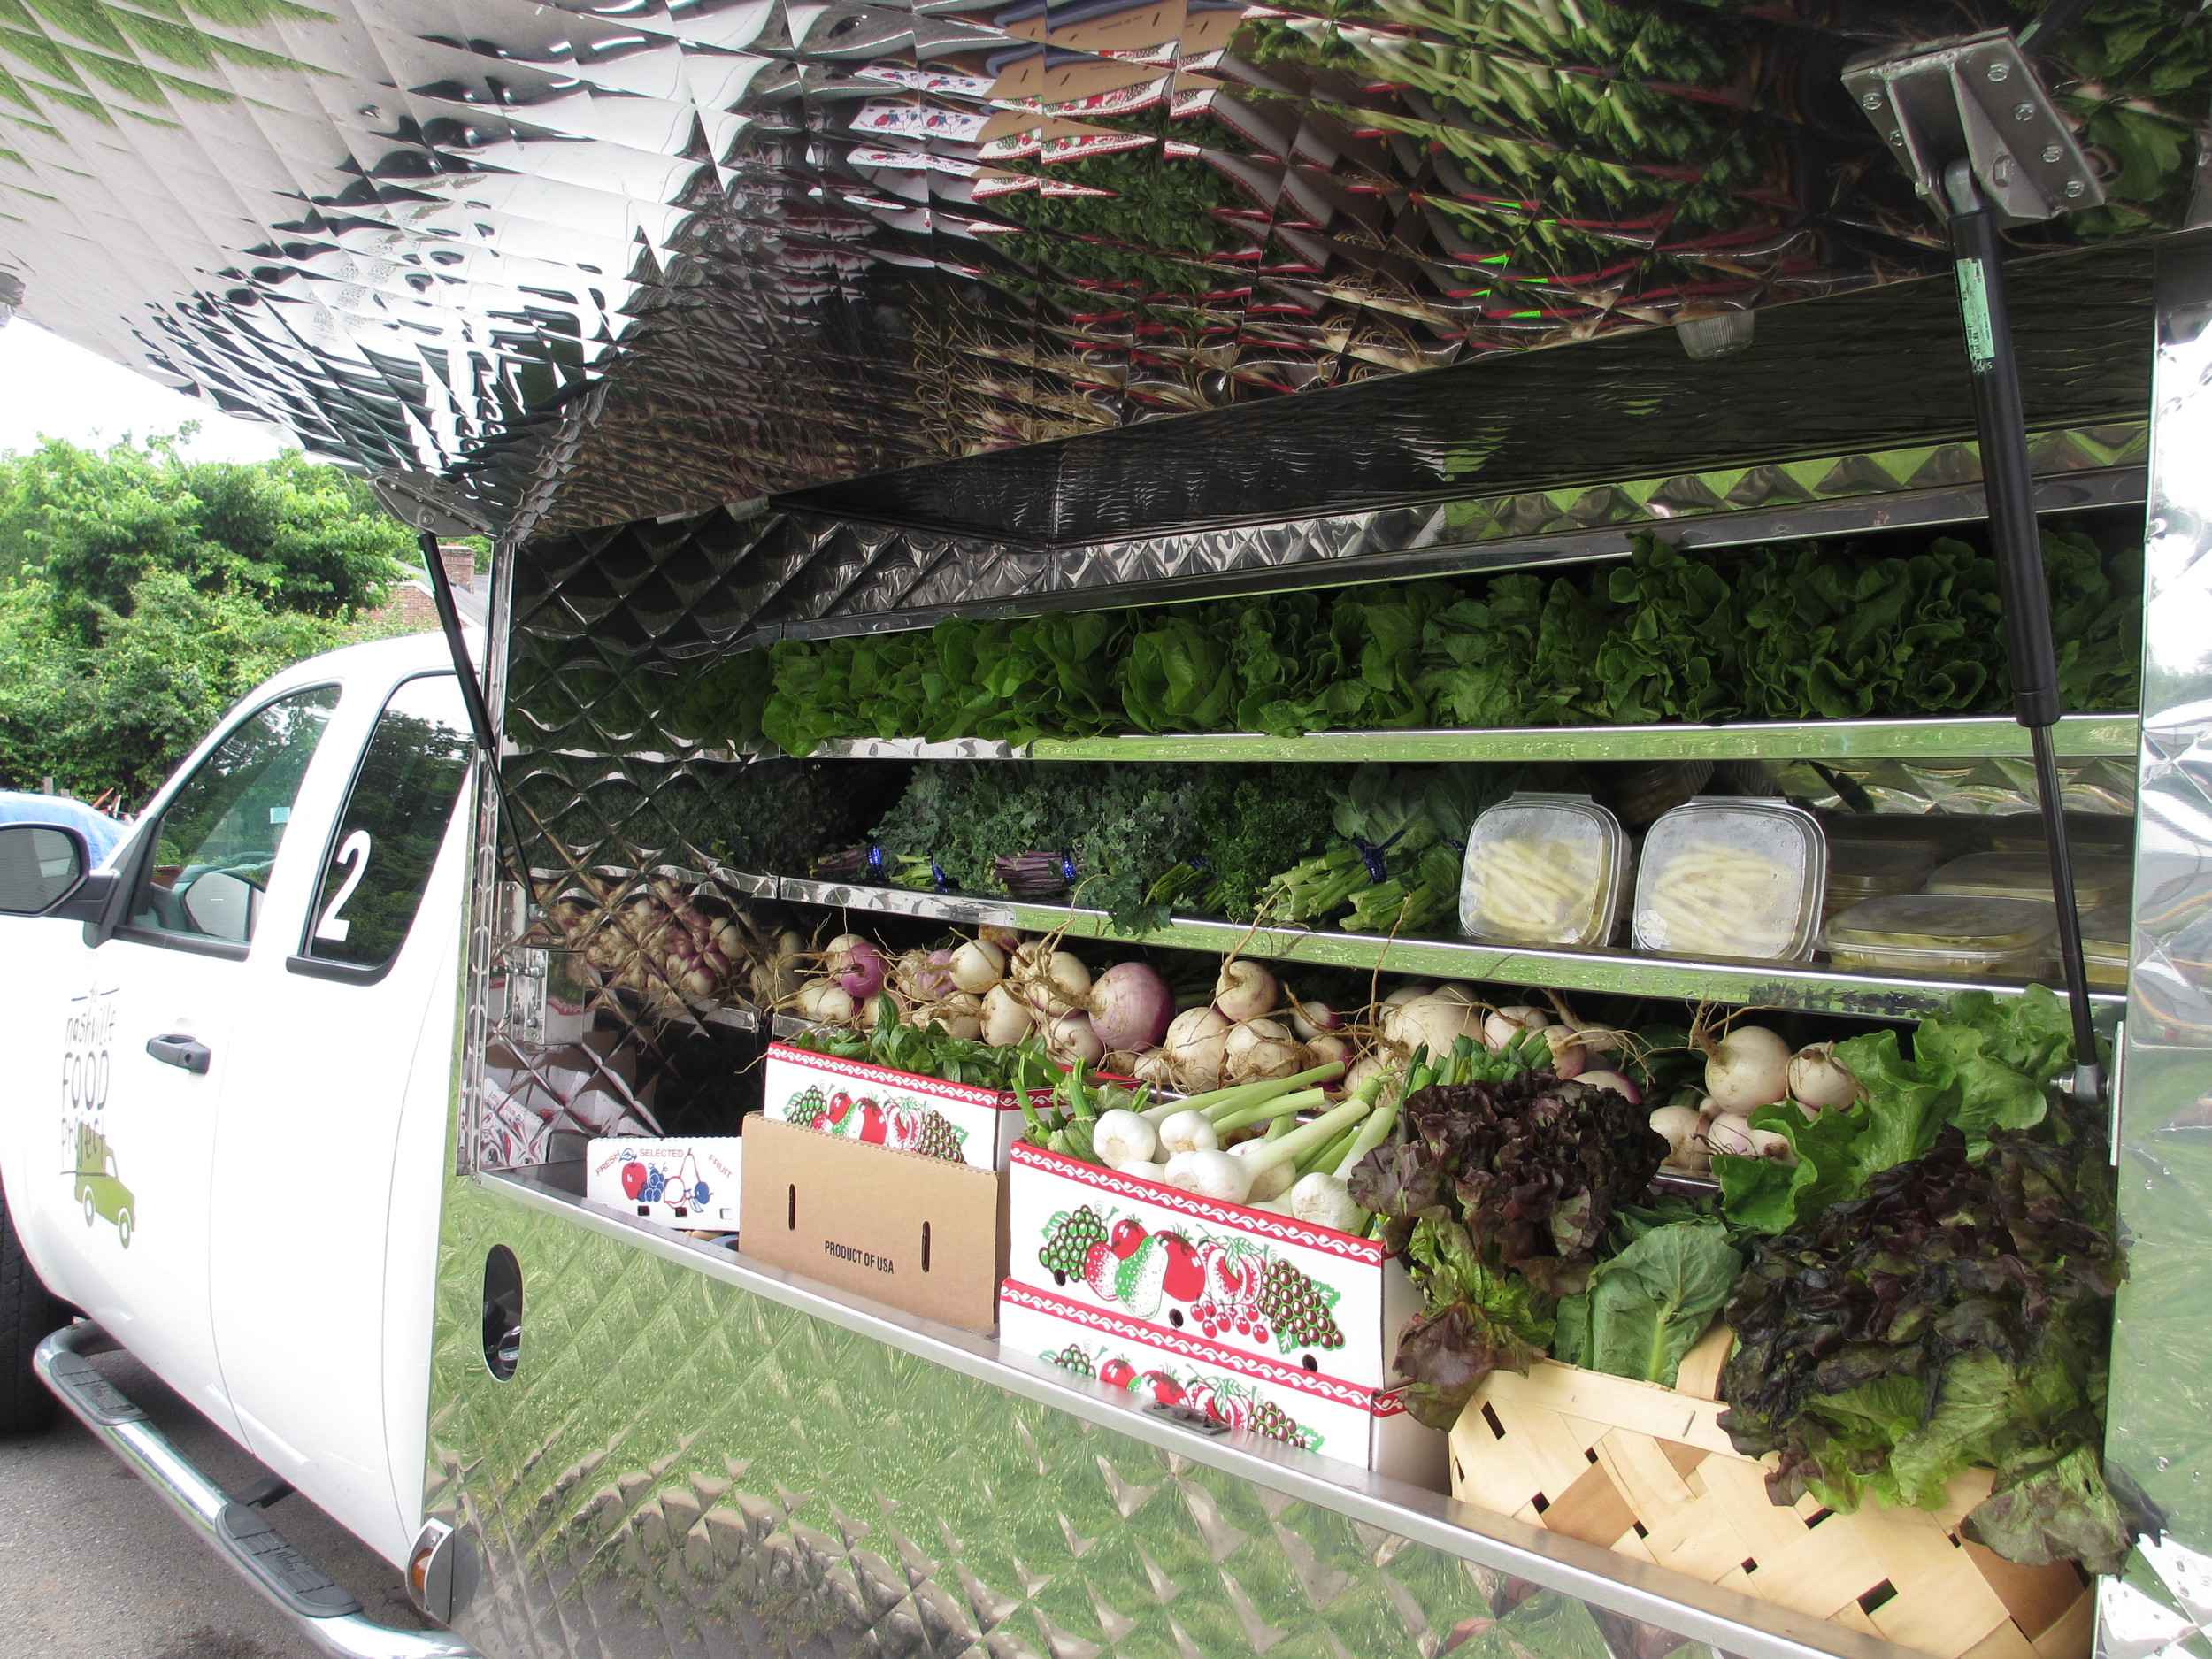 Passenger side: space for market-style display of fresh produce or sack lunch items